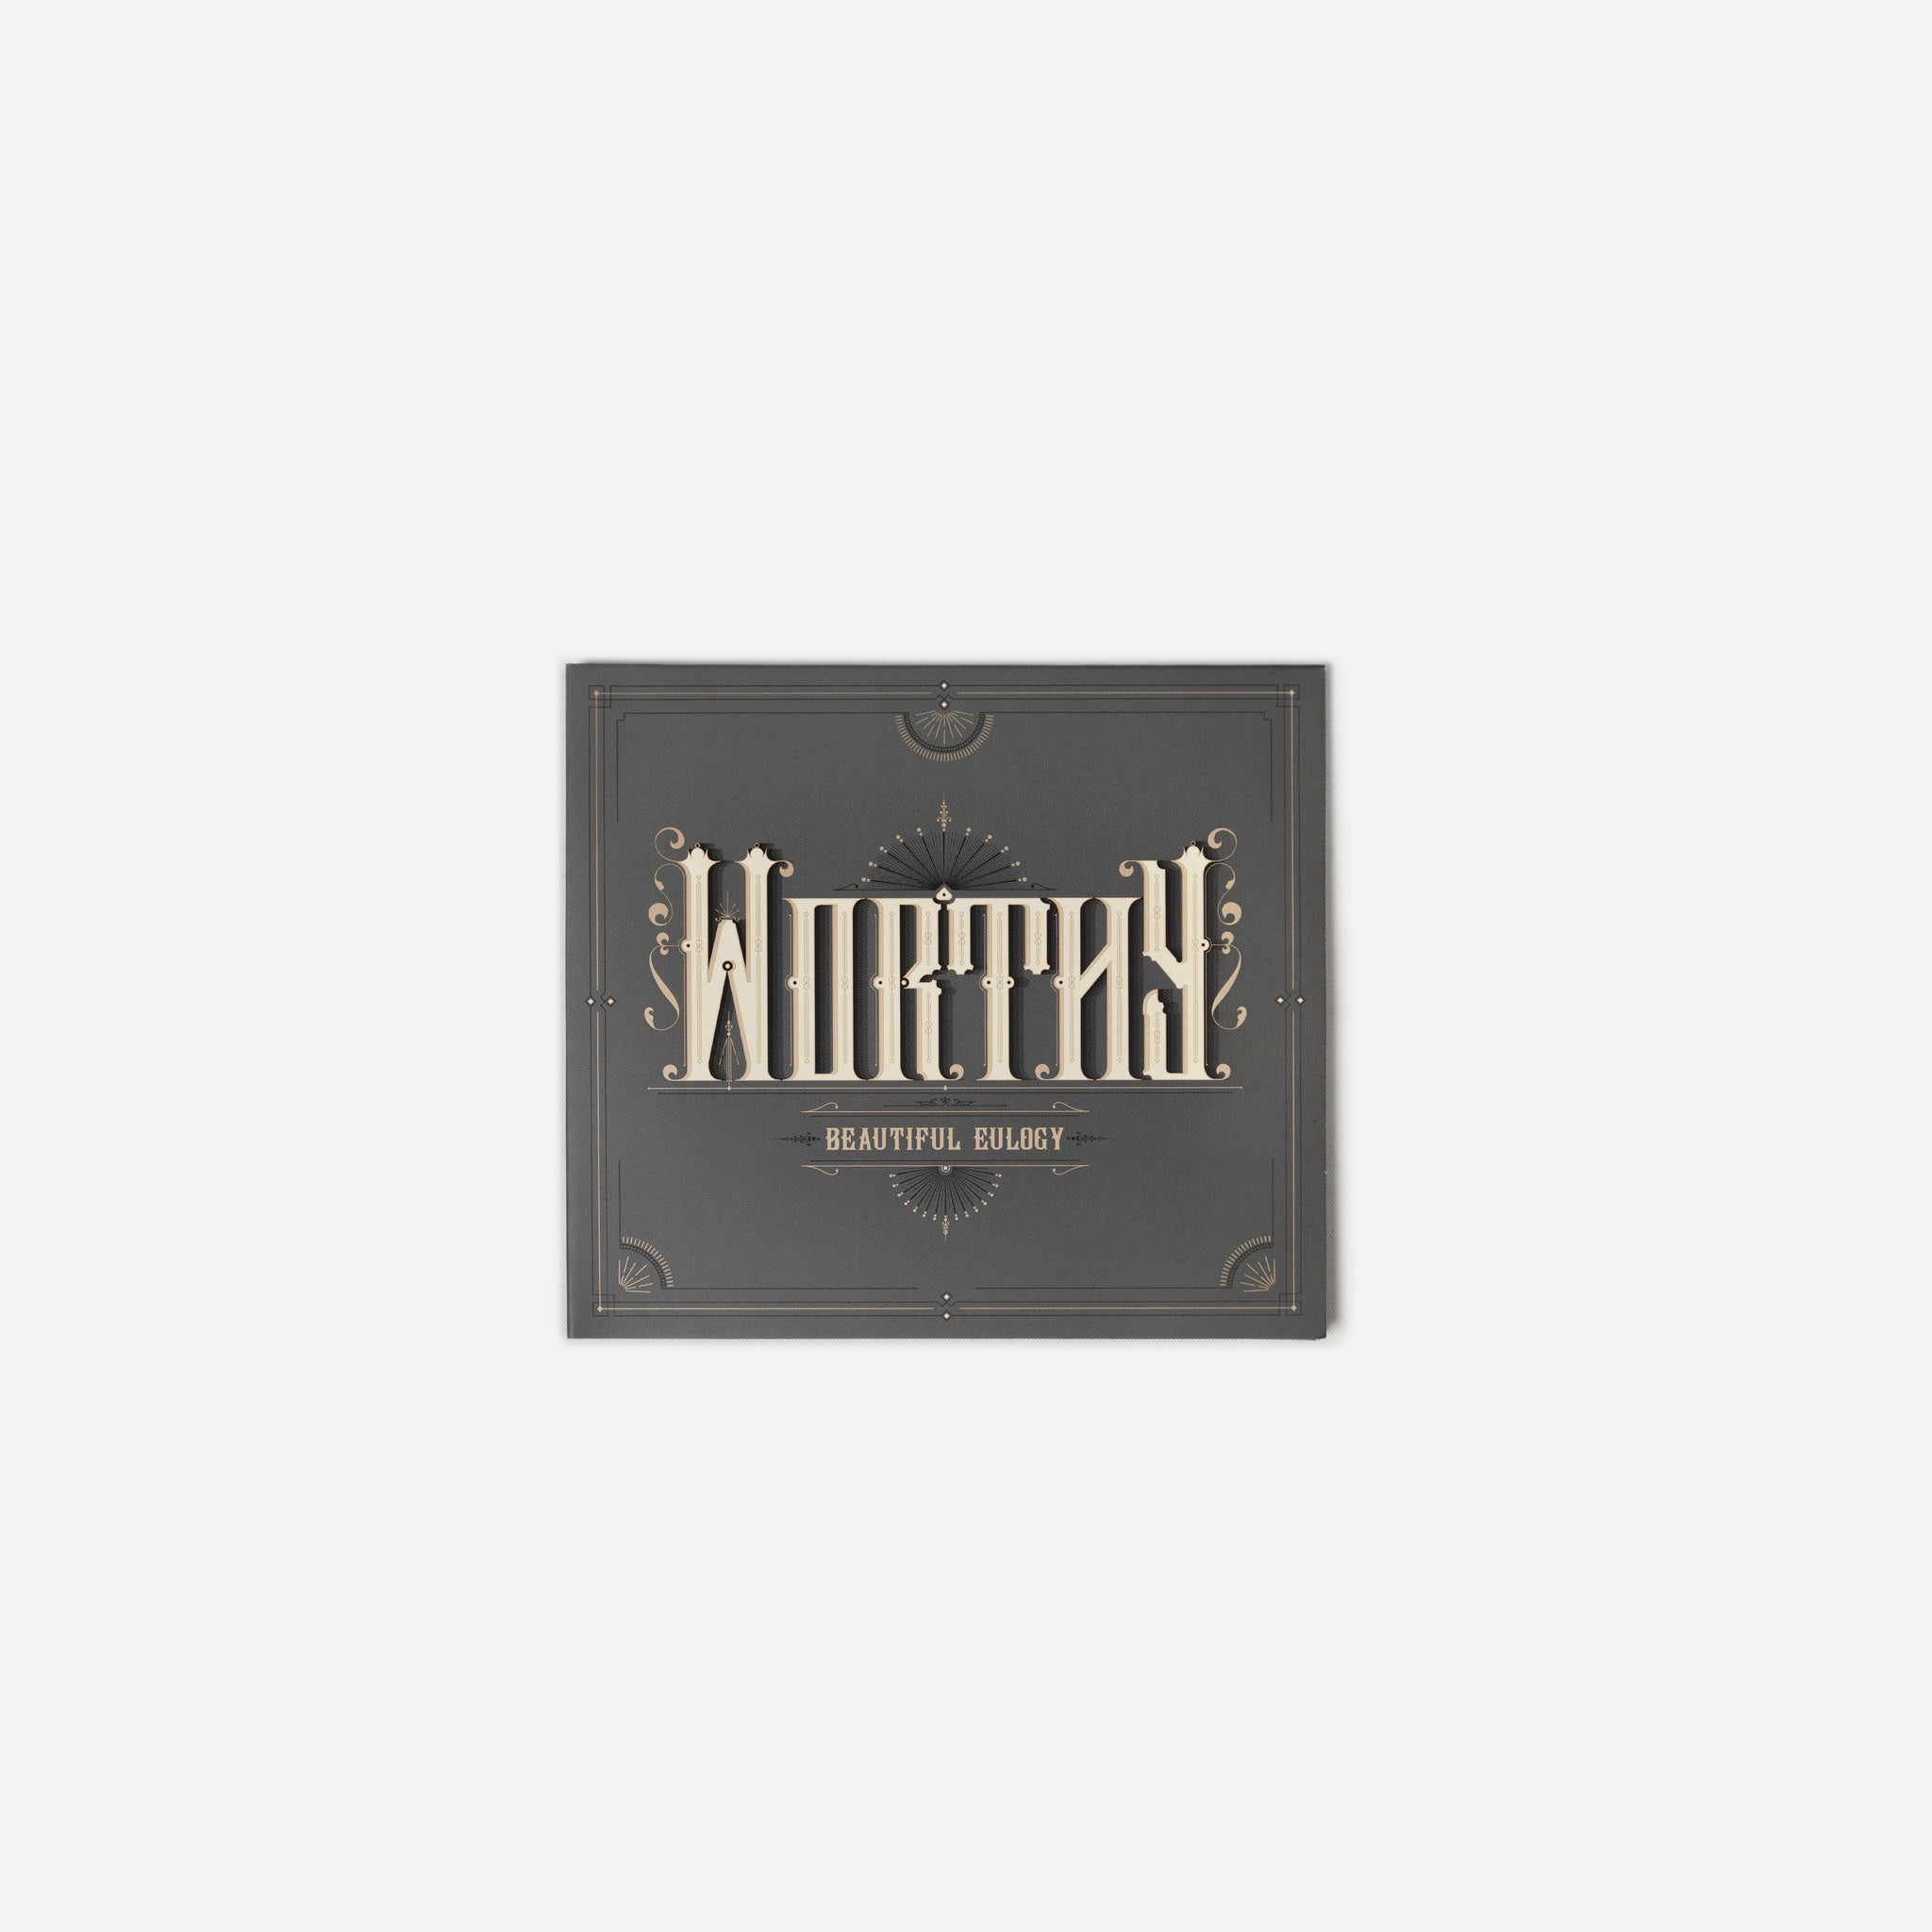 Worthy CD - Beautiful Eulogy